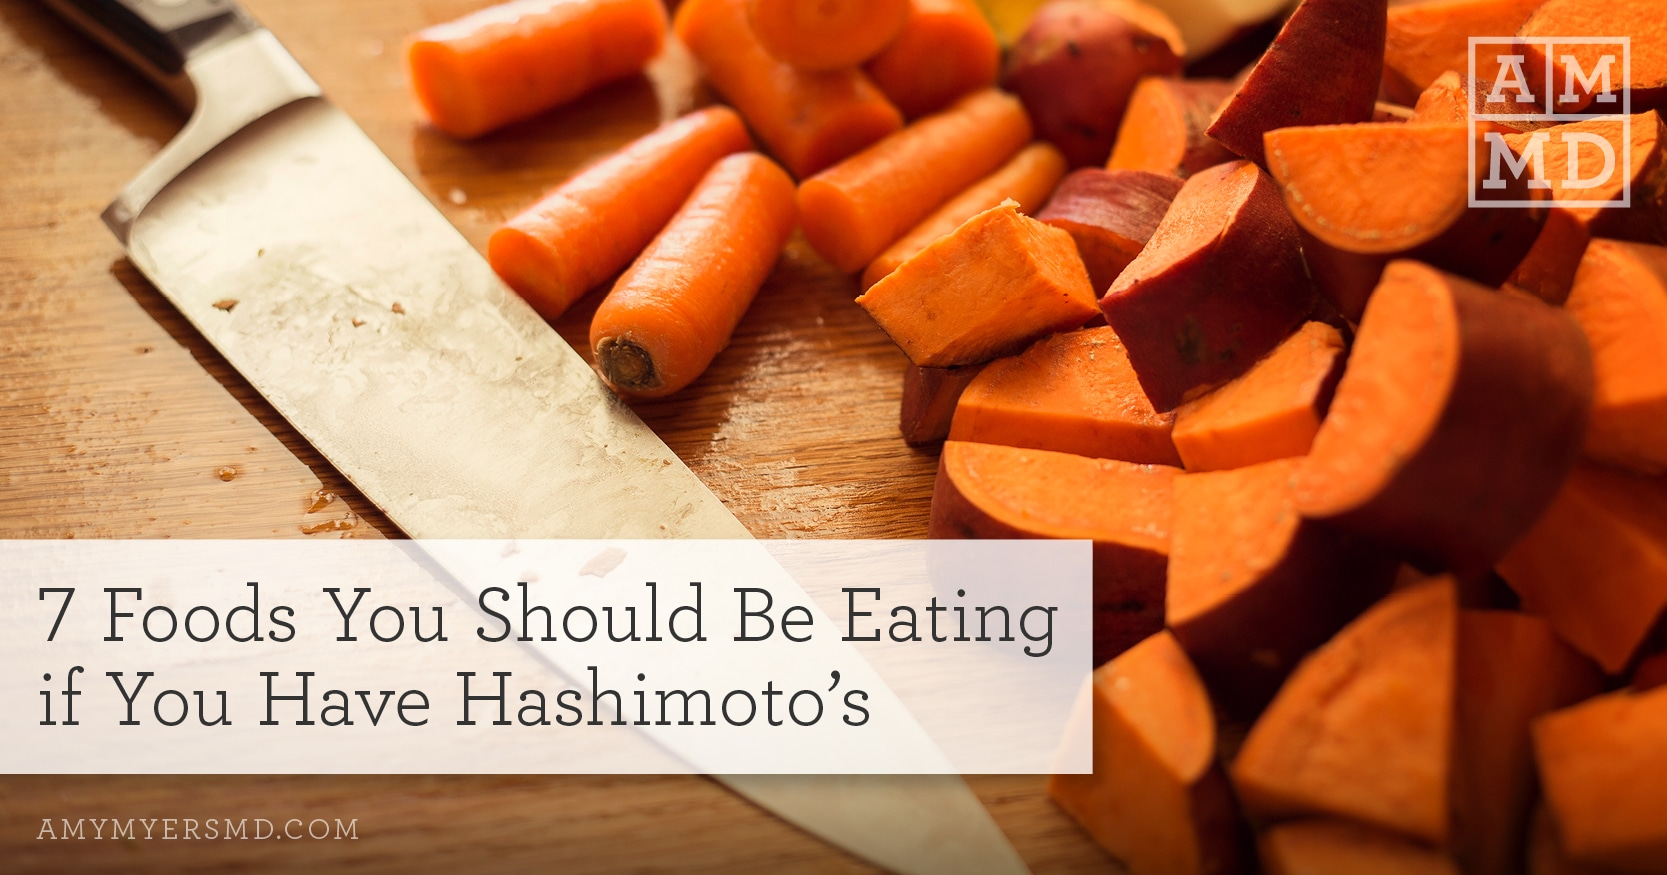 Foods You Should Be Eating if You Have Hashimoto's - Sweet Potatoes and Carrots on a Cutting Board - Amy Myers MD